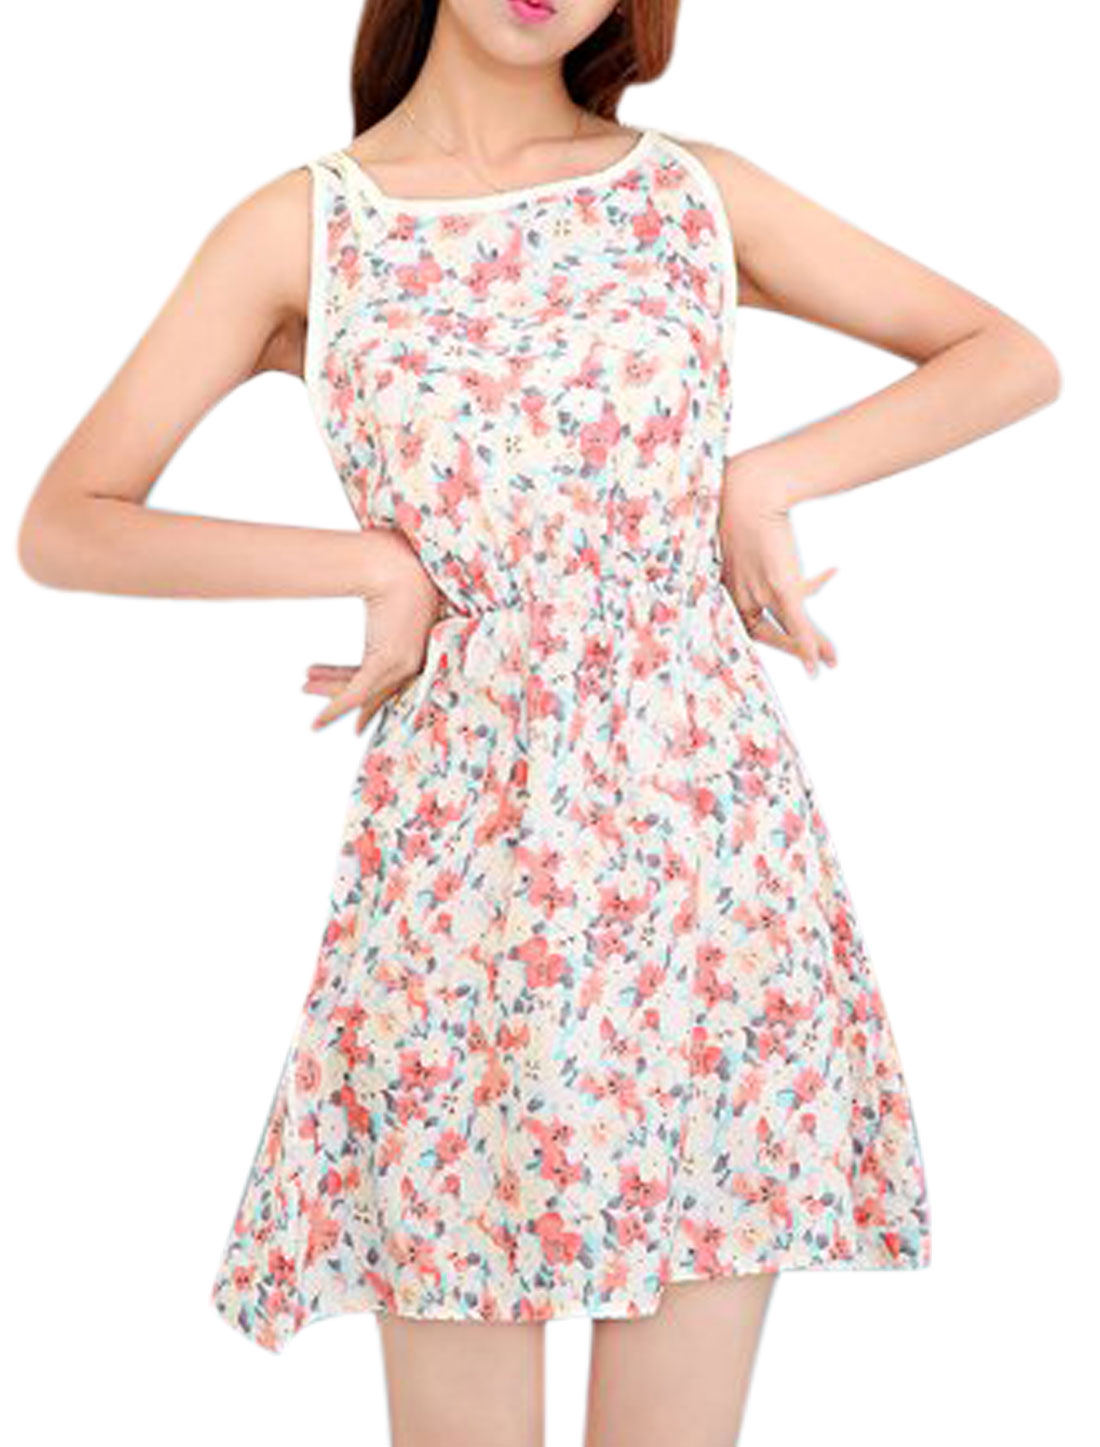 Lady Self Tie Straps Allover Floral Prints Sleeveless Sun Dress Multercolor XS